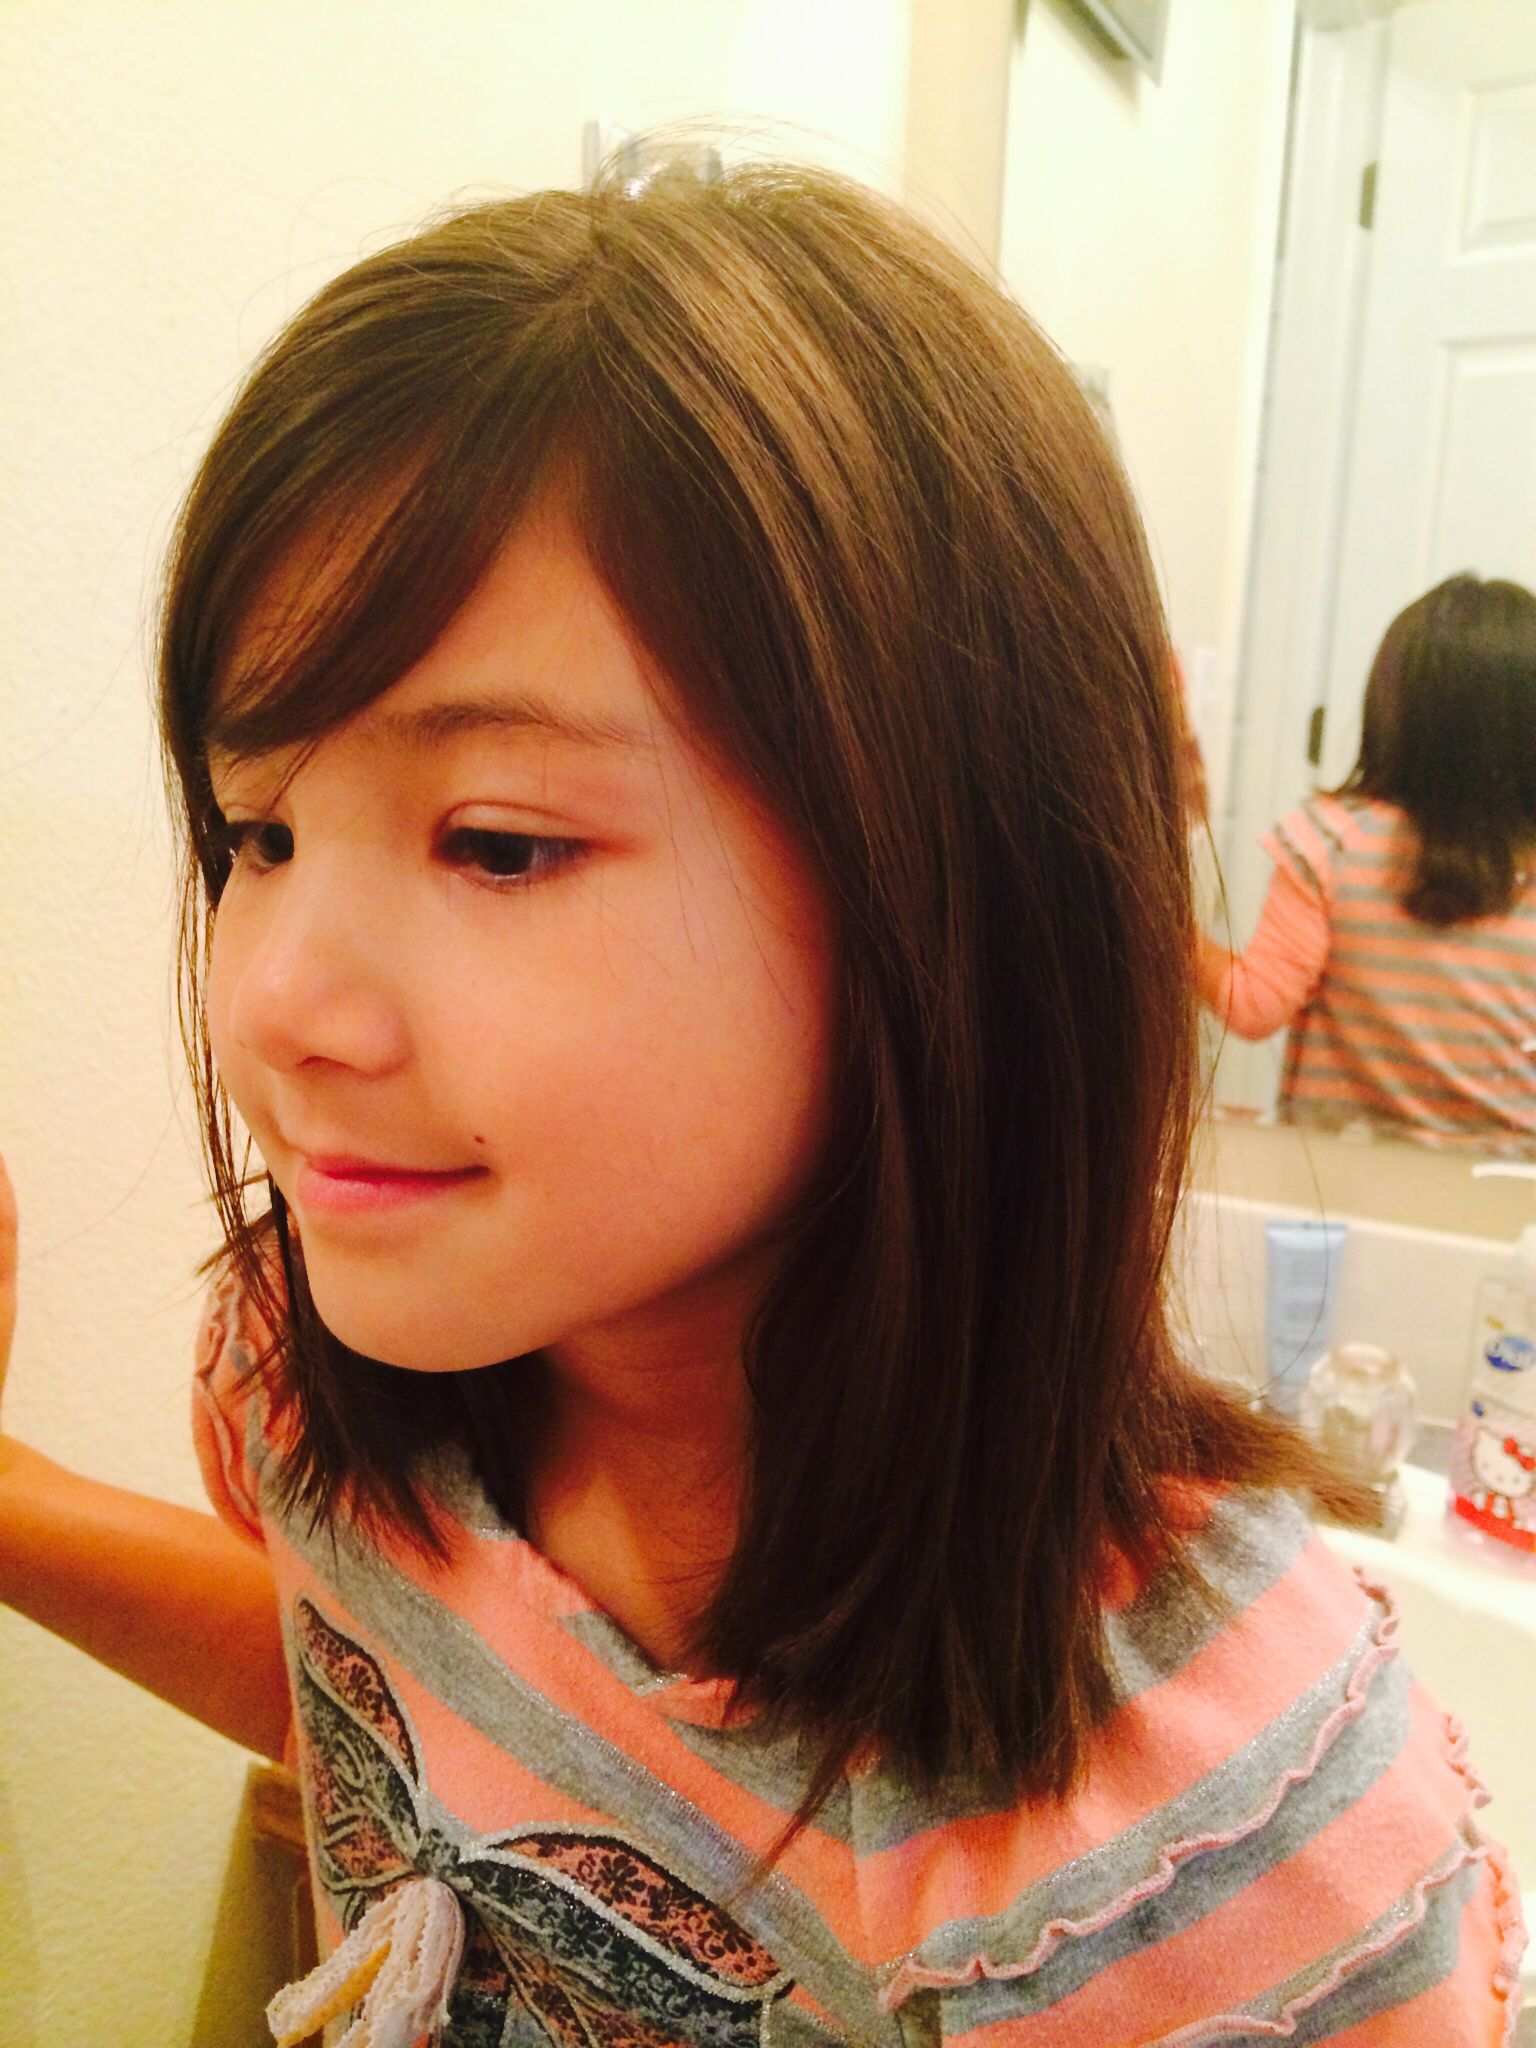 Hairstyles And Cuts Medium Length Little Girl Hair Cut  Hair Cuts  Pinterest  Girl